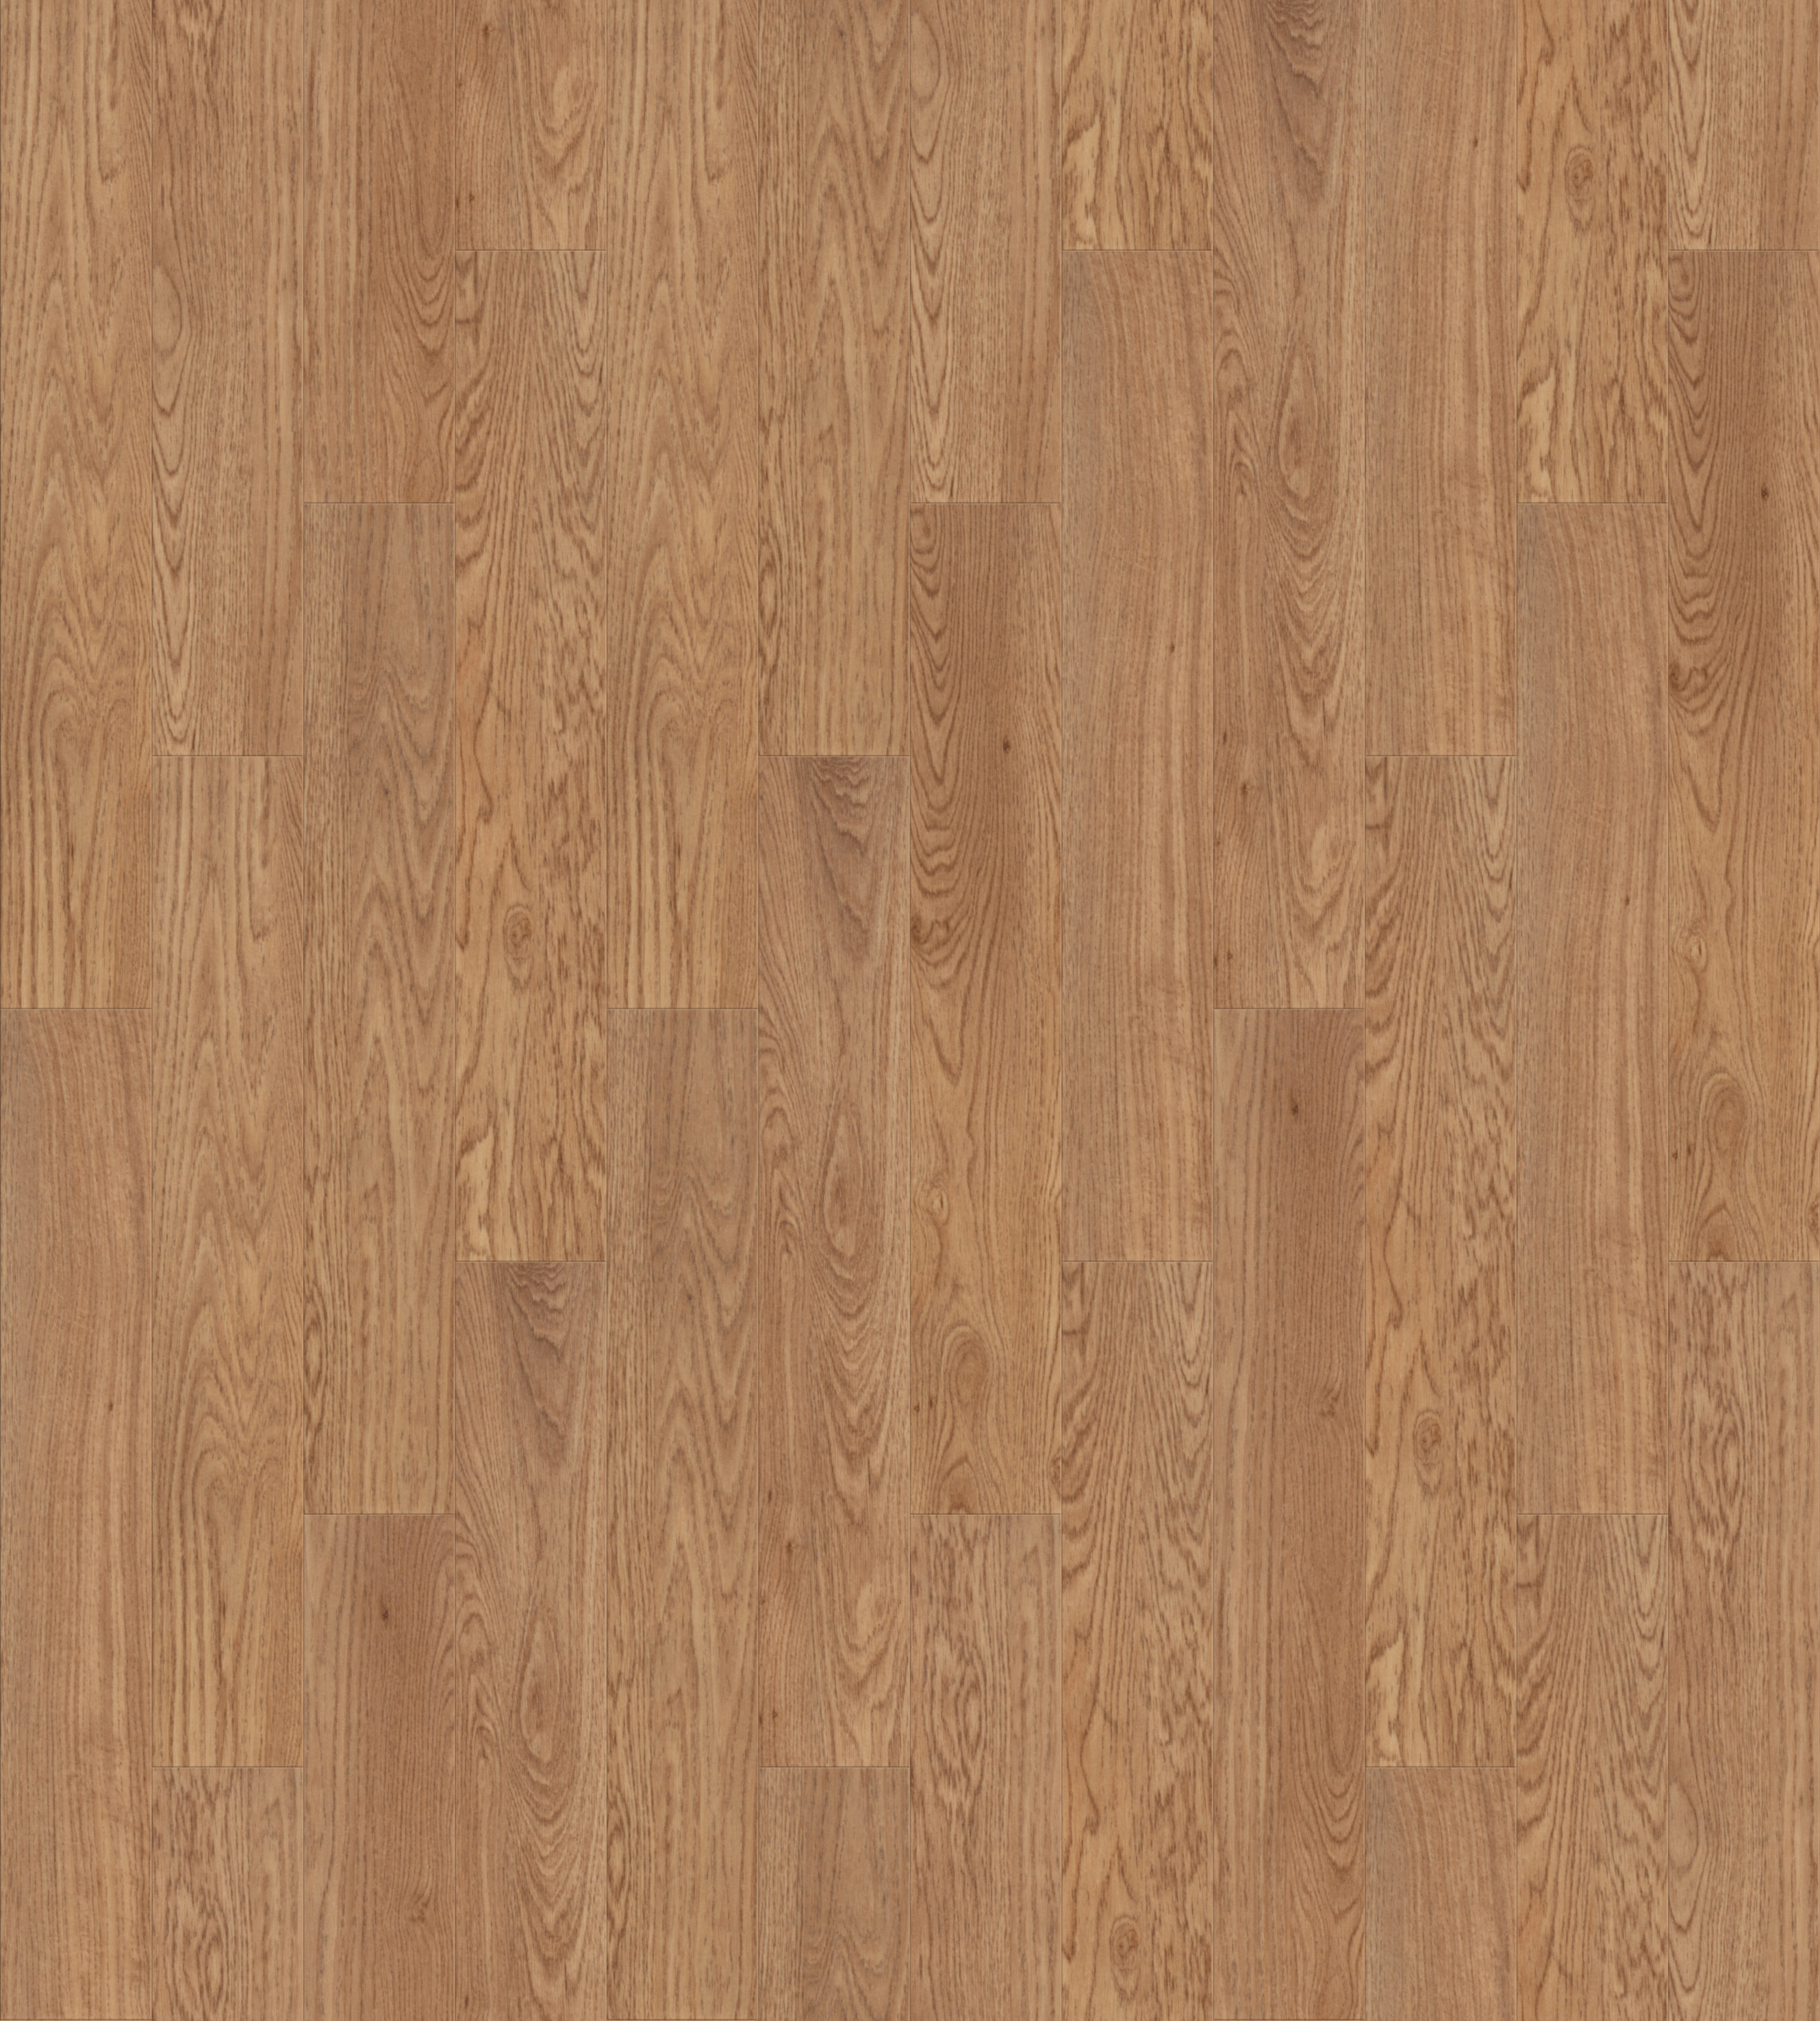 Allura Wood Luxury Vinyl Tiles Forbo Flooring Systems